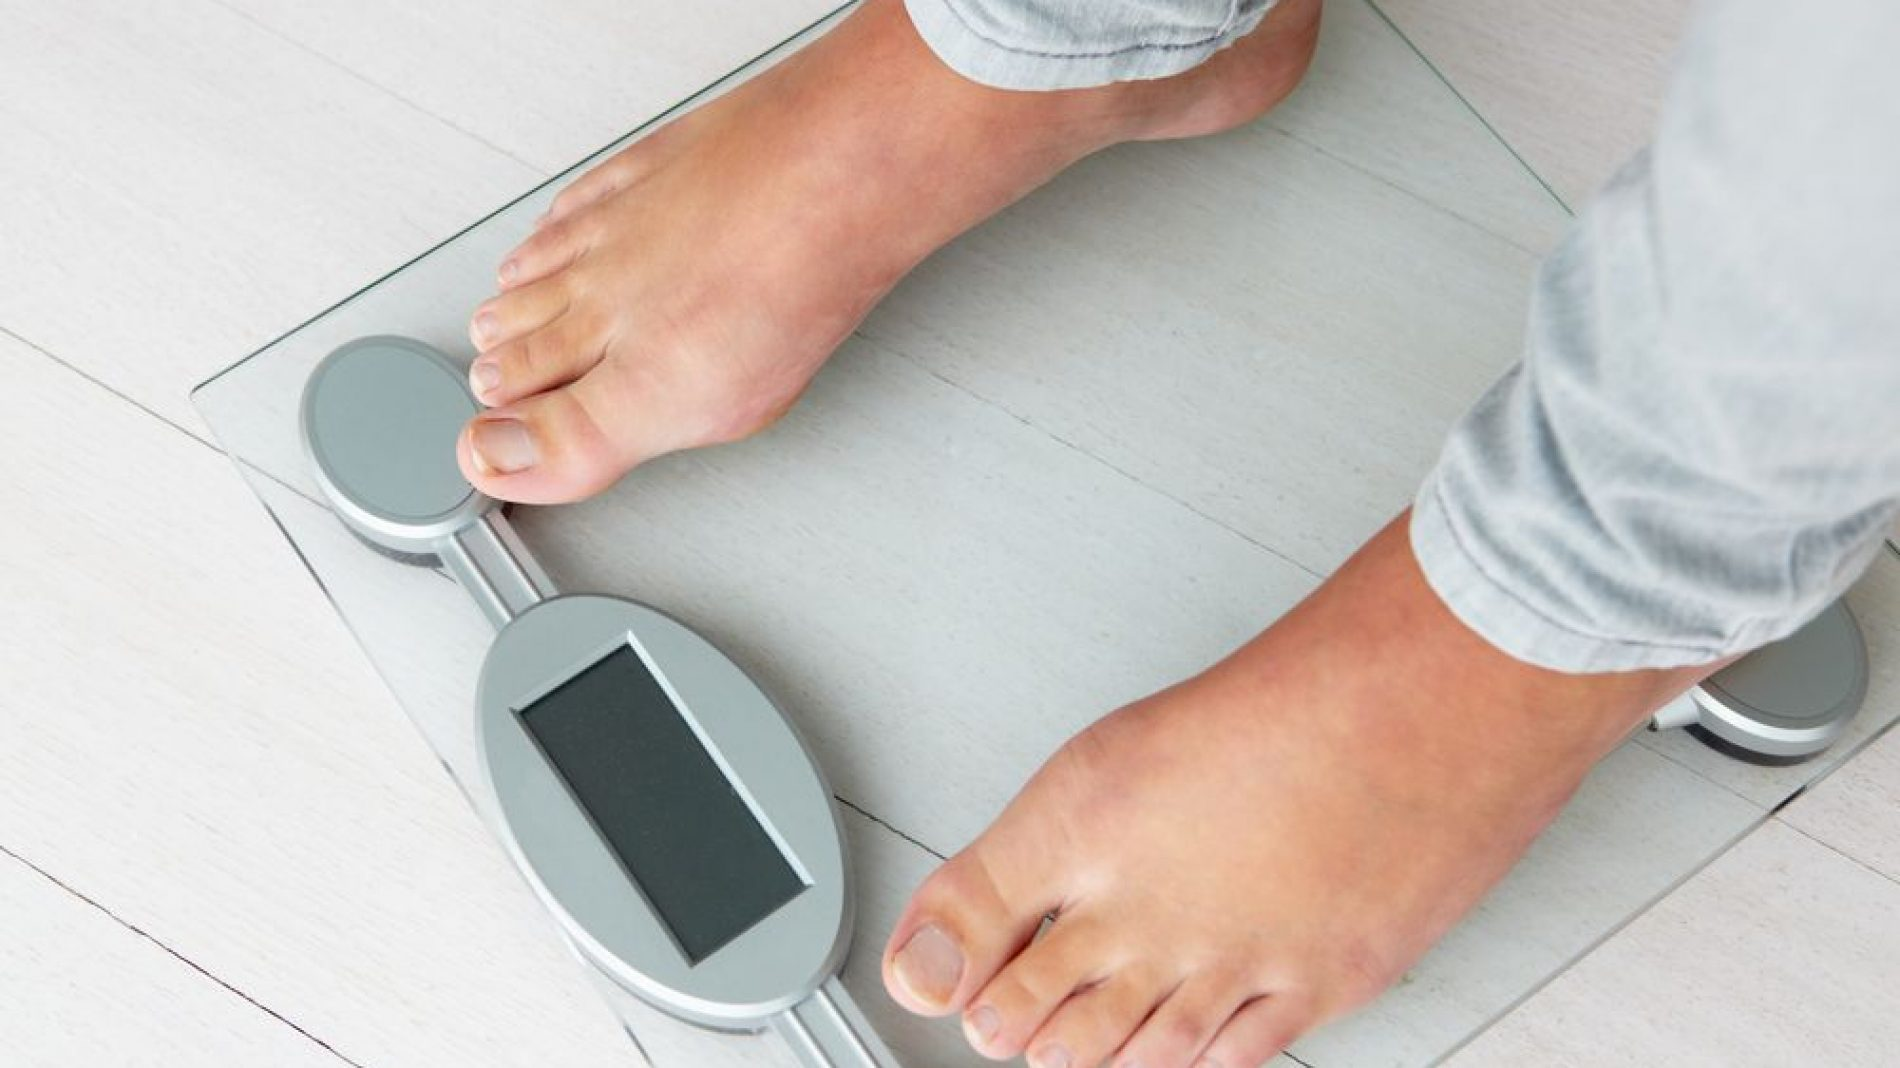 Weight-scales